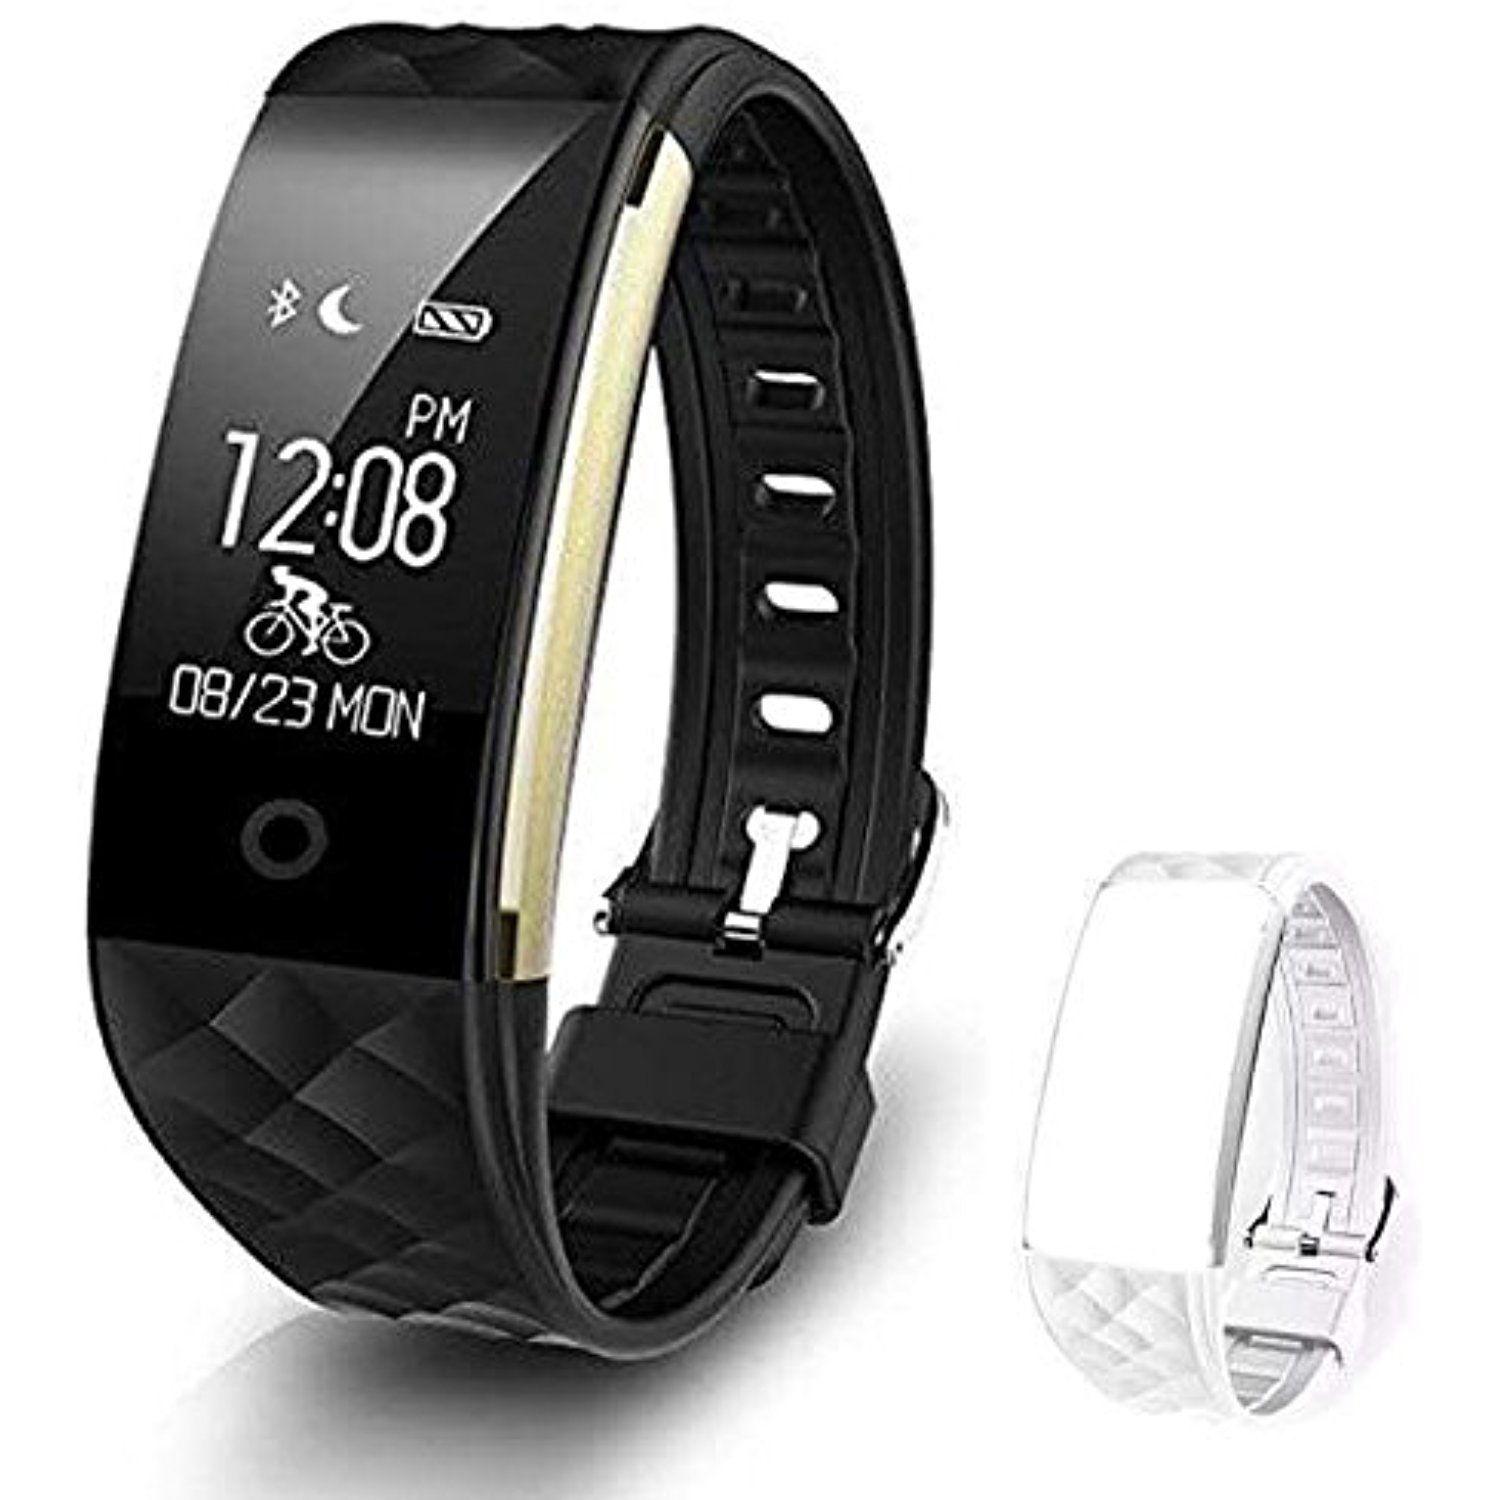 HIVRIX Smart Fitness Watch - Heart rate, pedometer, and